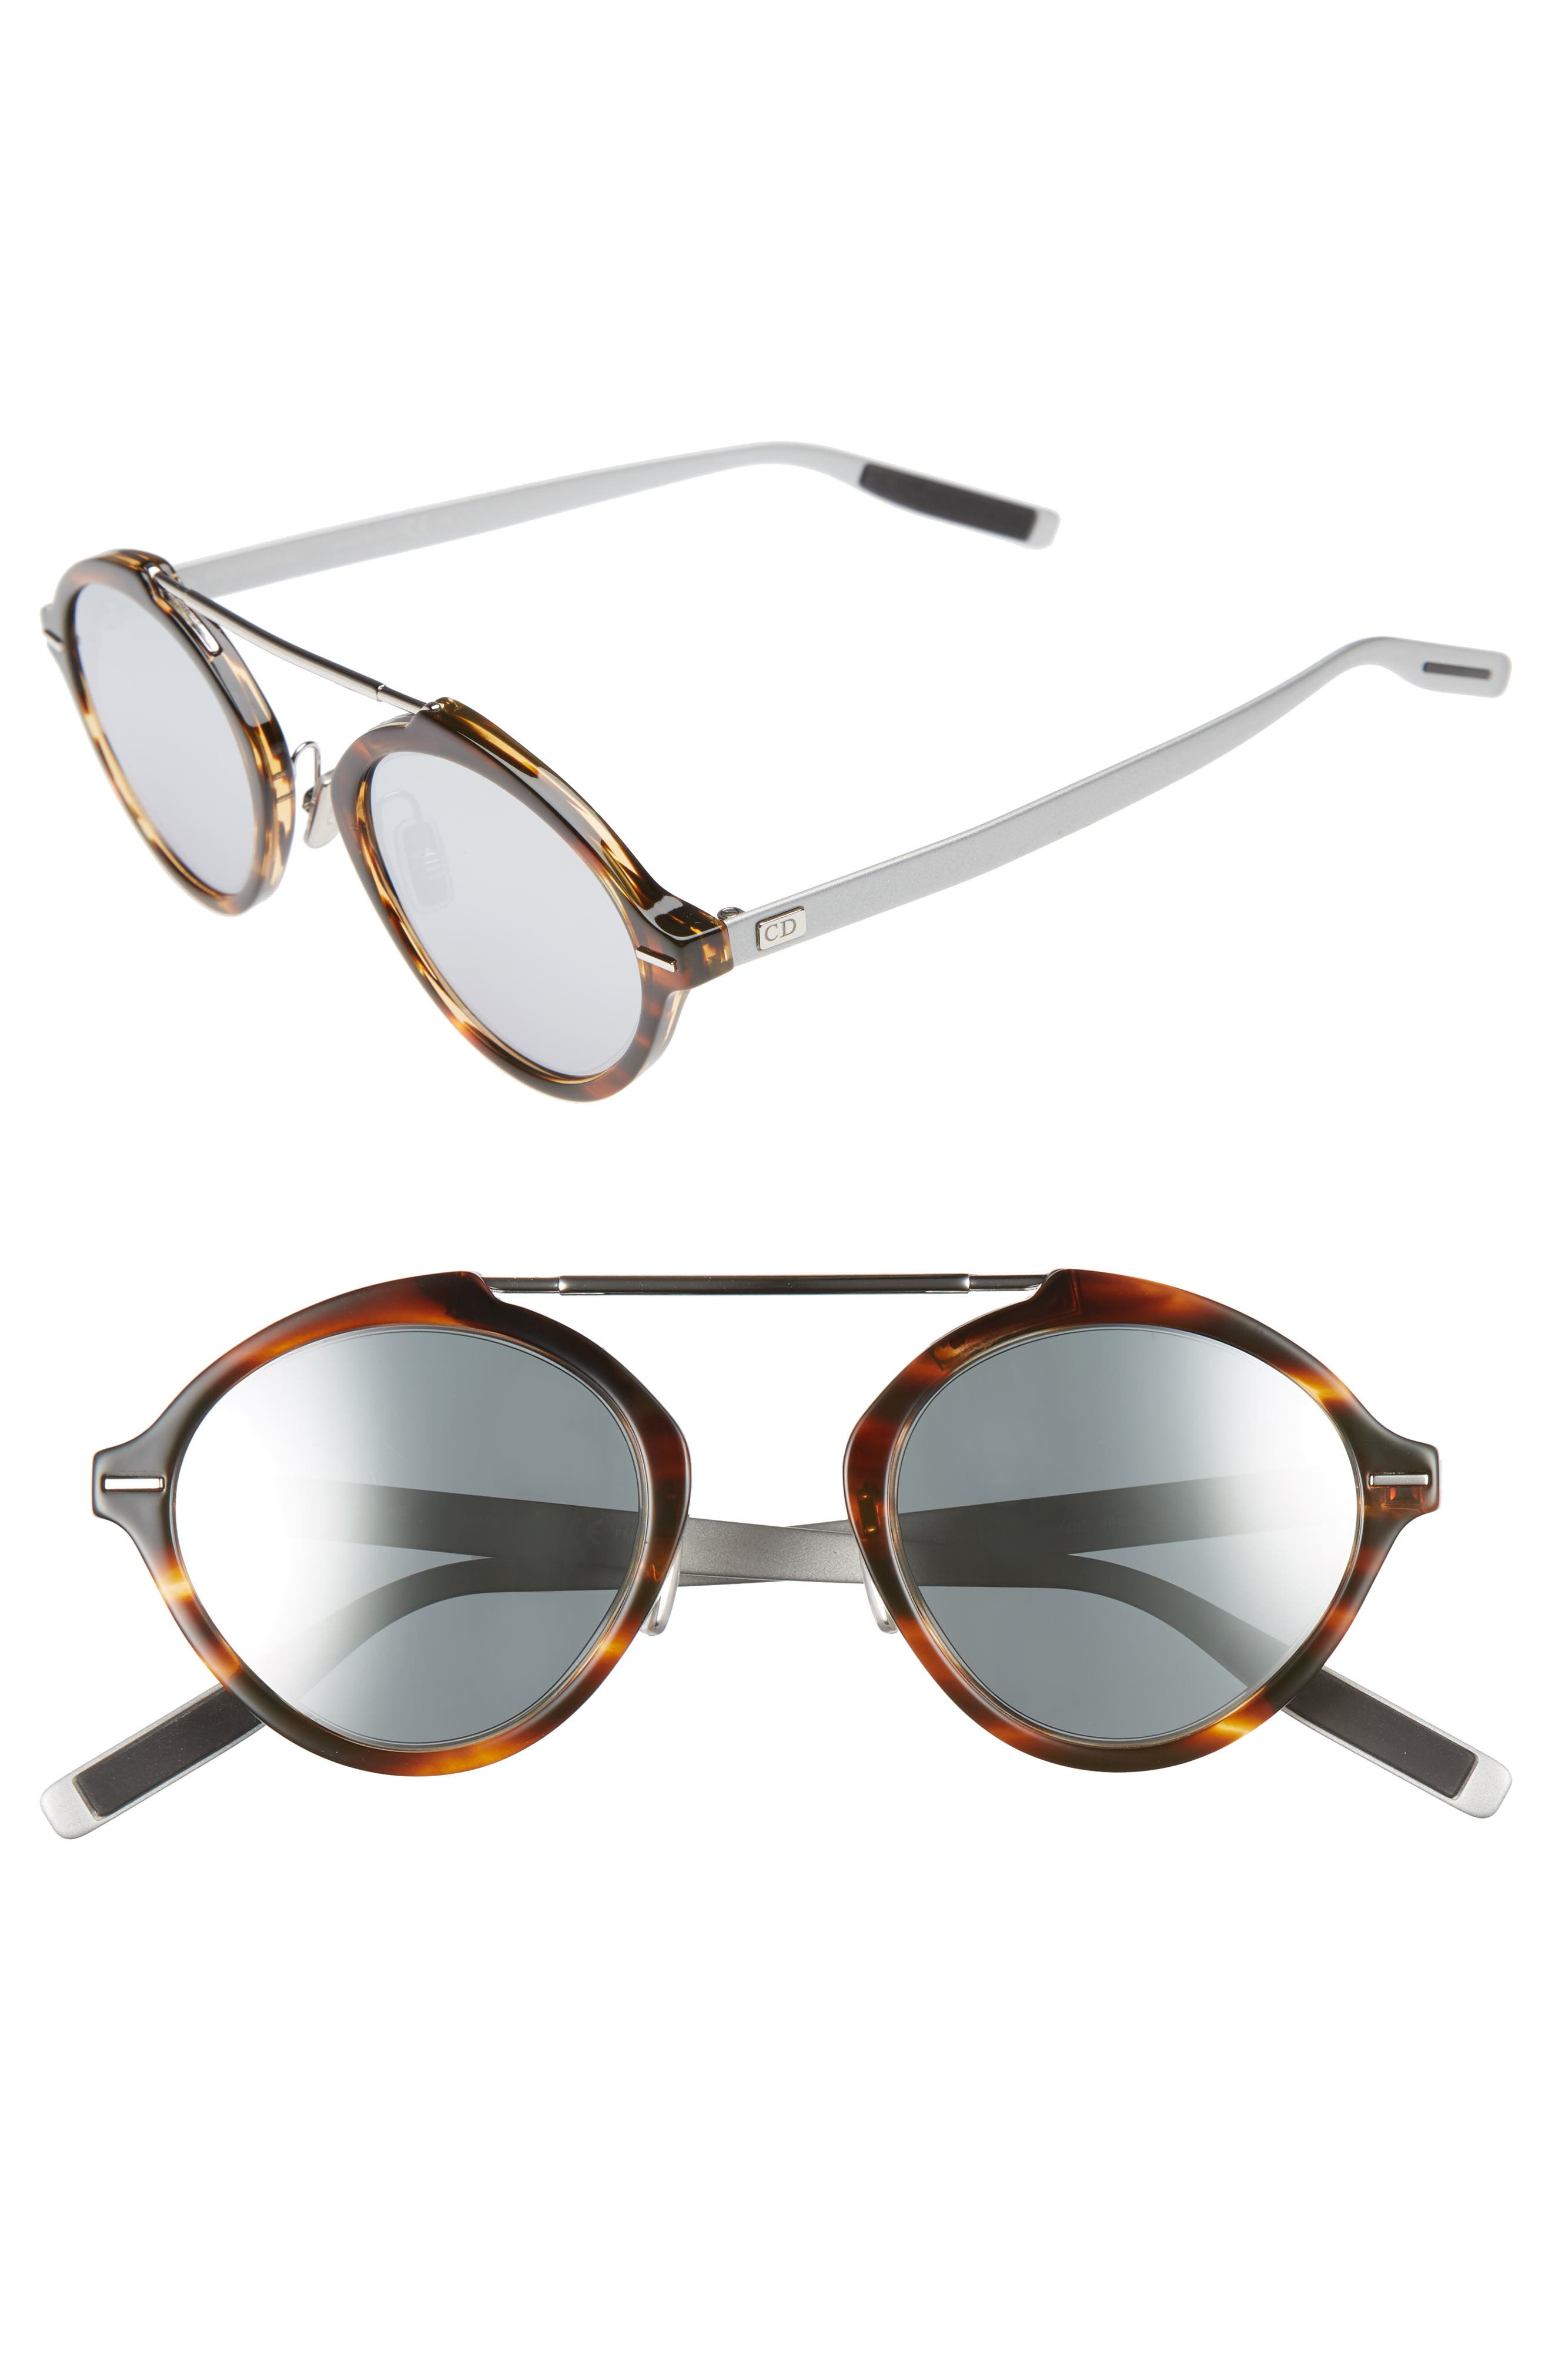 Main Image - Dior Homme System 49mm Sunglasses